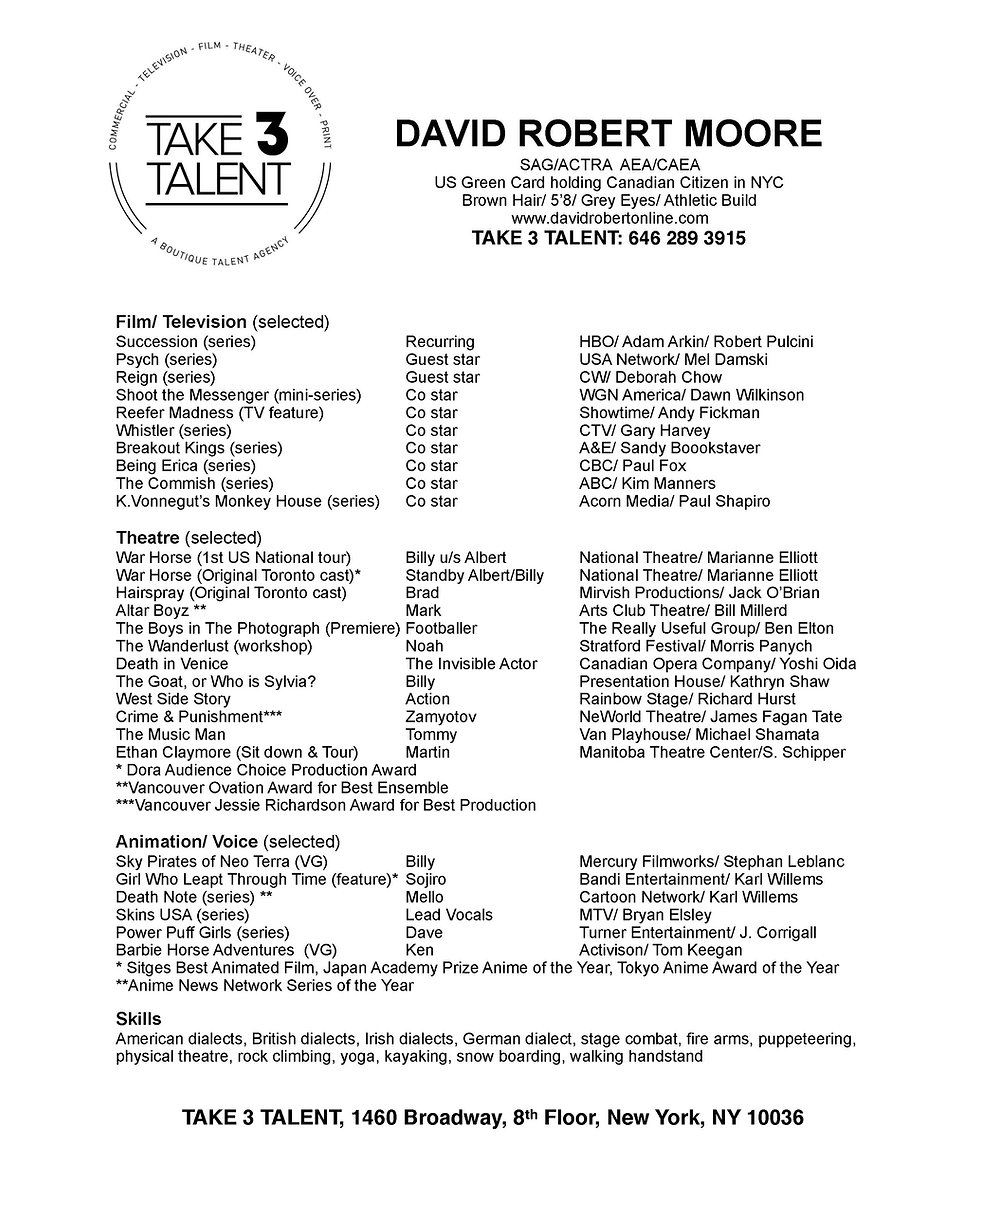 David Robert Moore Resume_ T3T.jpg